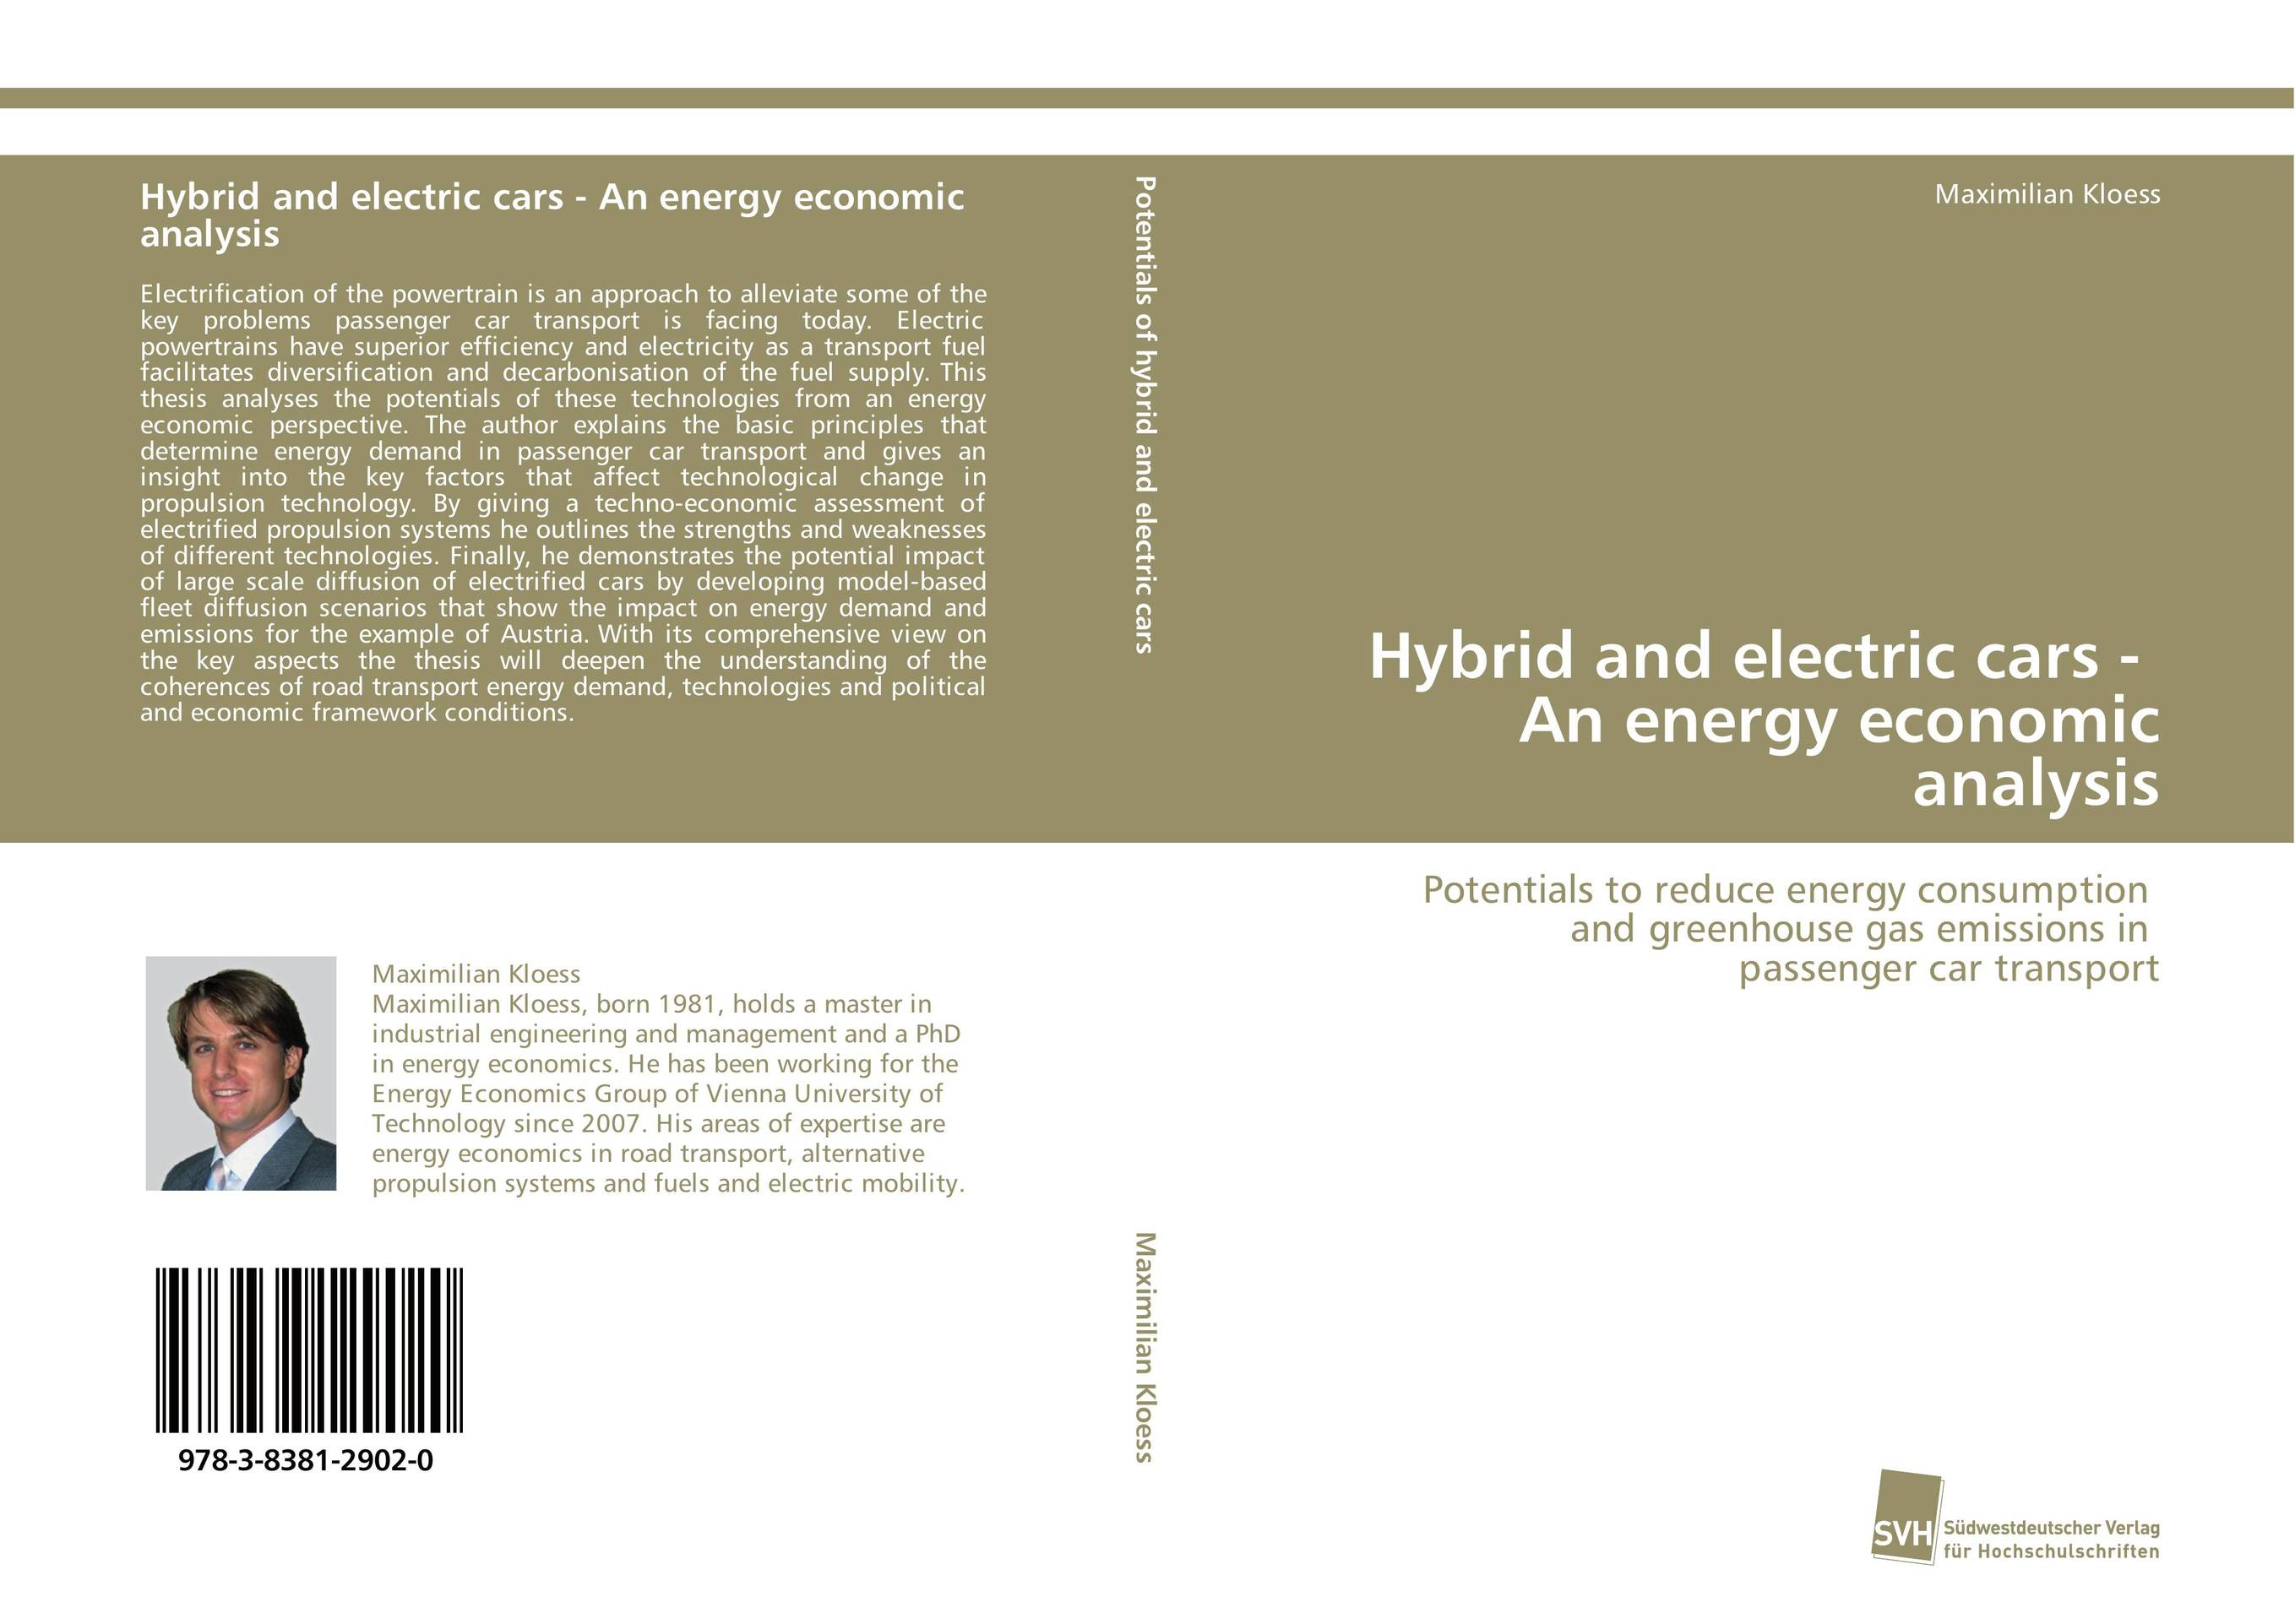 Hybrid and electric cars - An energy economic analysis